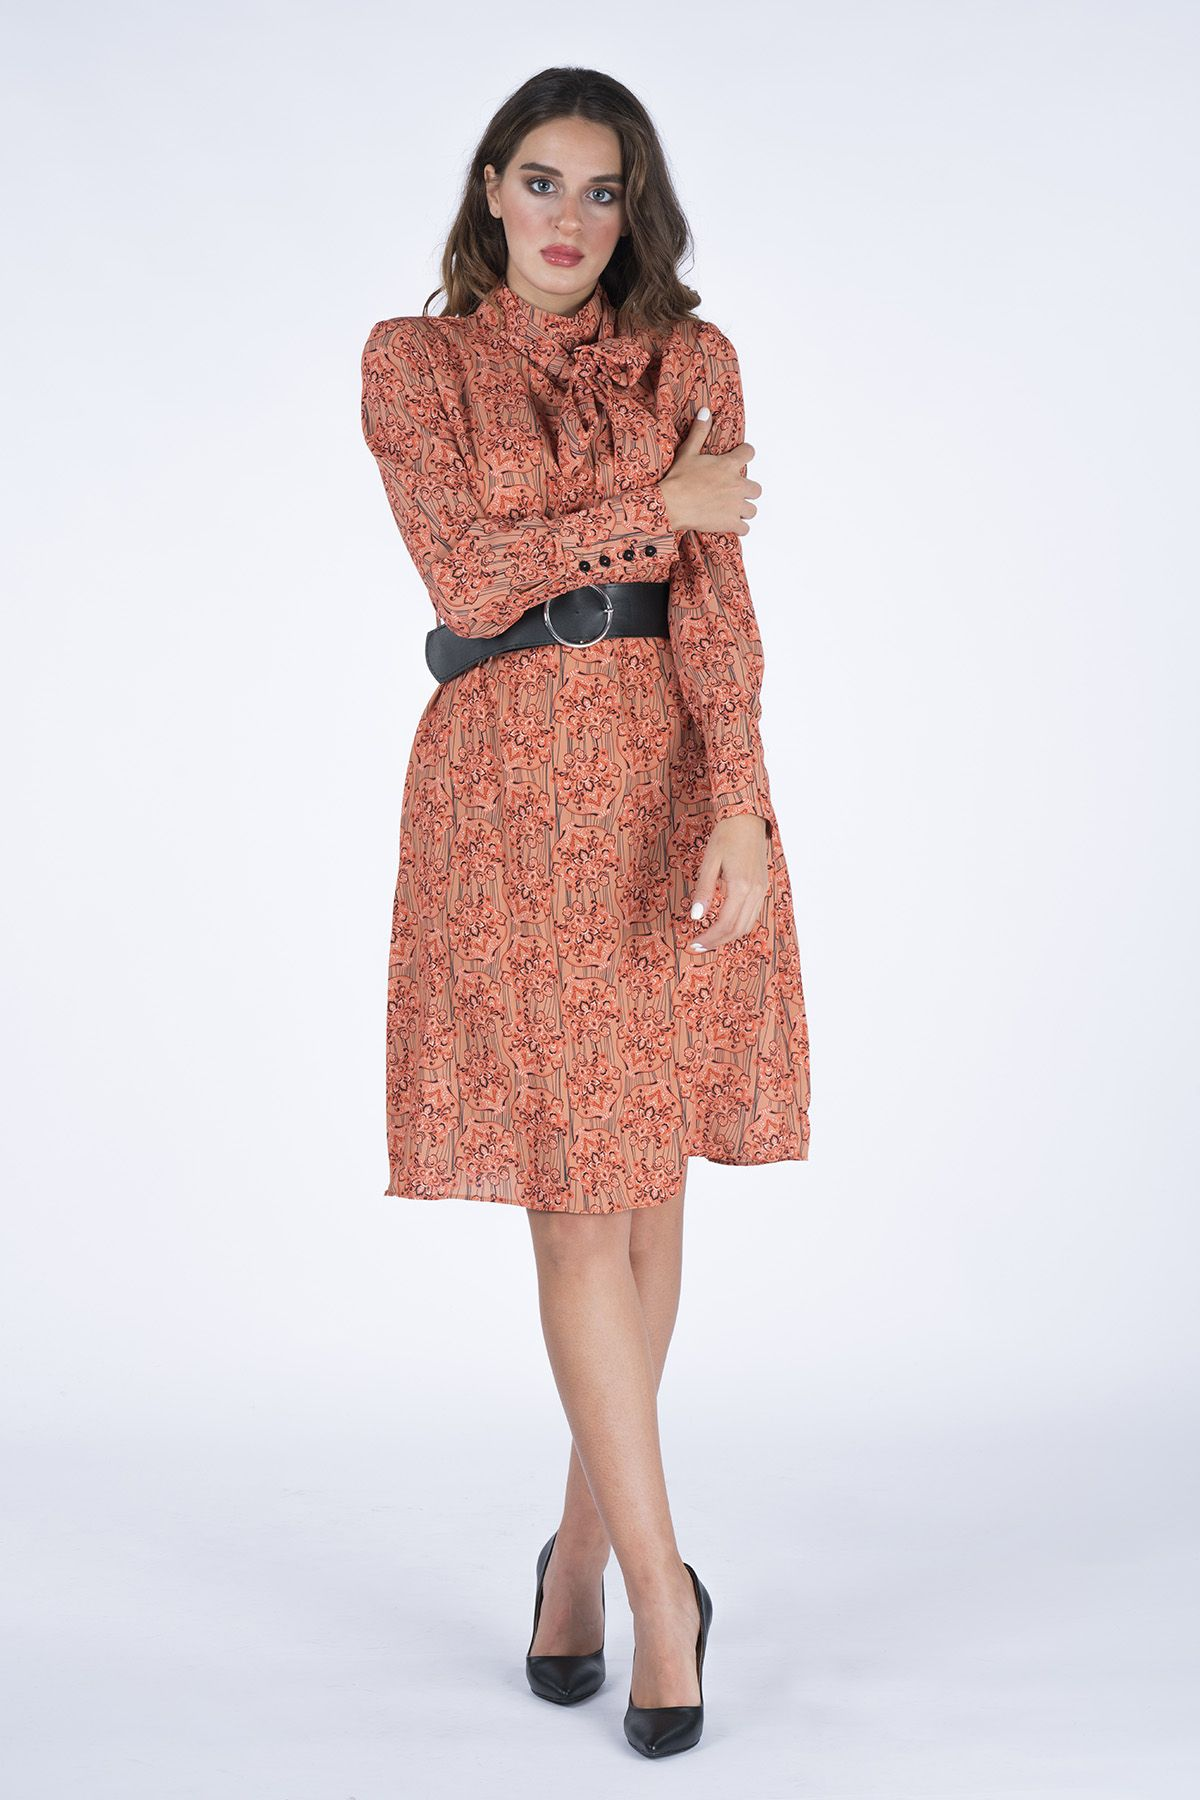 Scarf Detailed Women's Dress With Belt  7004 Tile